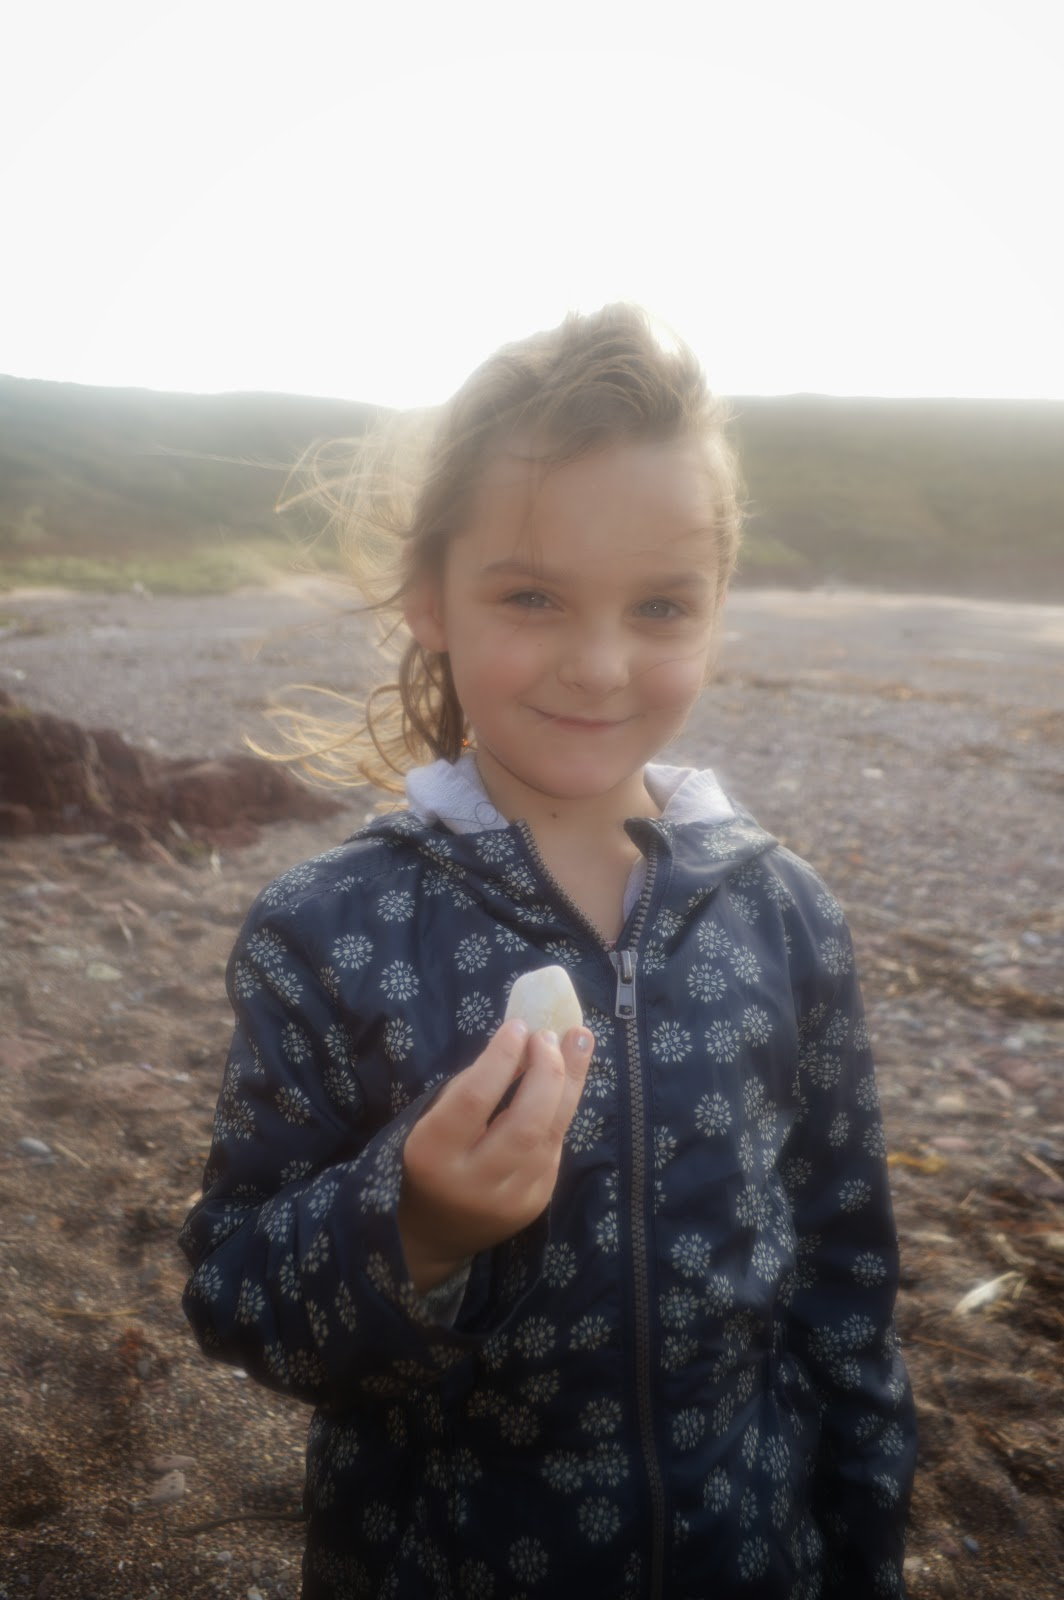 Caitlyn with Pebble at manorbier Beach Pembrokeshire Wales